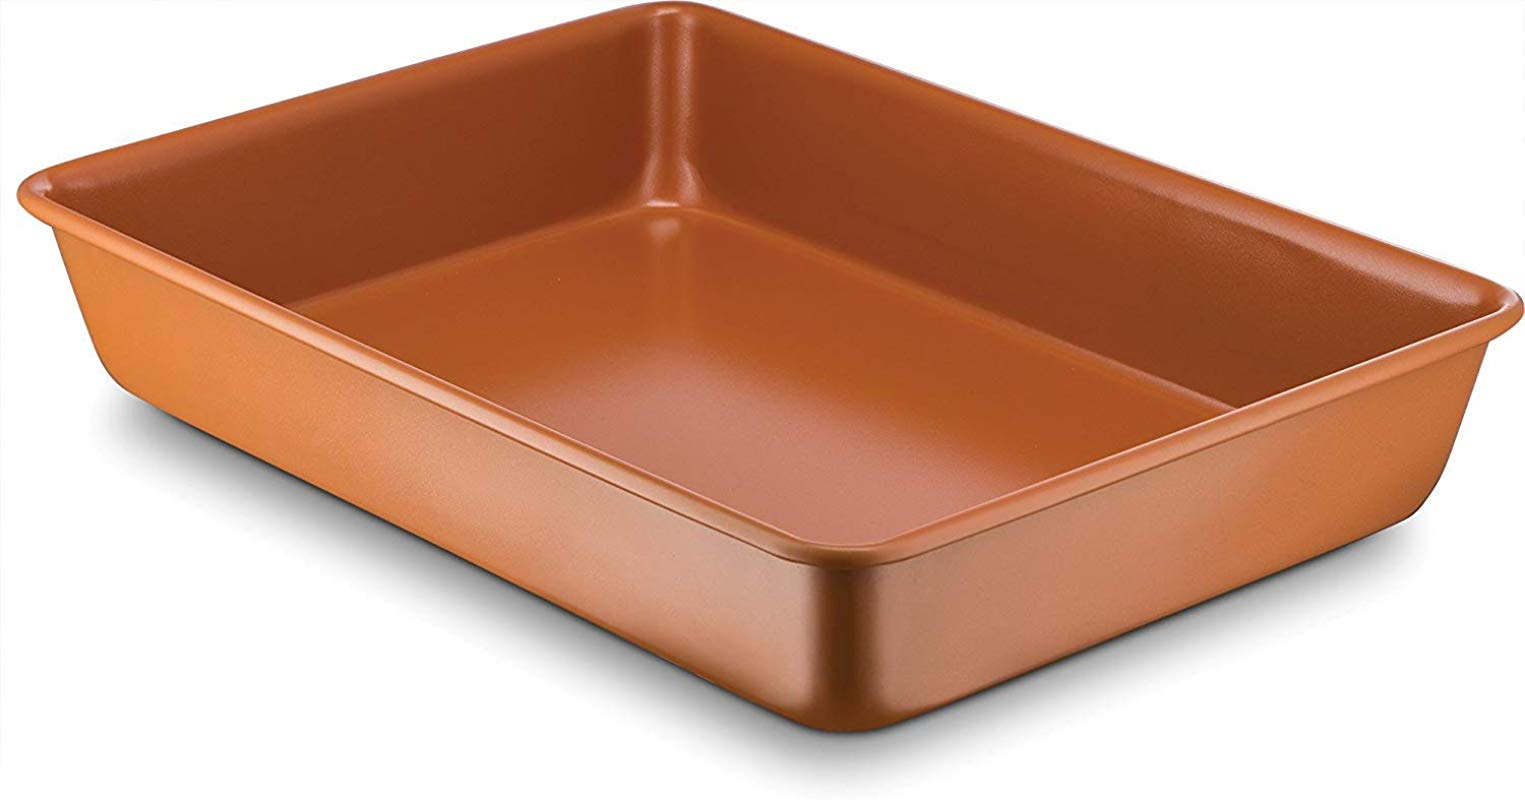 Ceramic Coated Copper Baking Pan 9 Inch X 13 Inch Premium Nonstick Dishwasher And Oven Safe PTFE PFOA Free